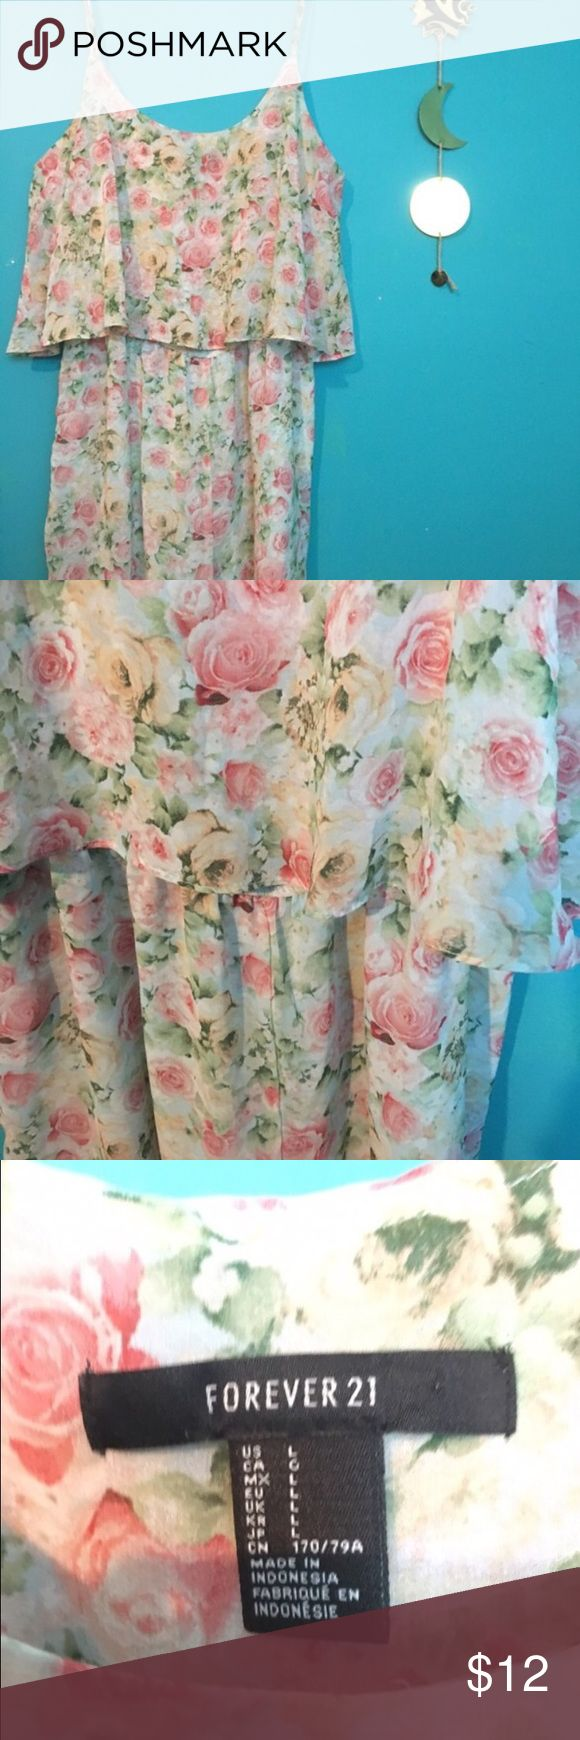 Floral Romper Great condition, only worn a couple of times.  Sheer overlay and mint green layer underneath.  Adjustable straps.  Looks great on.  If you don't think you can pull off a romper, this is definitely a good one to try. #floral #feminine #fesival #flowy #casual #spring #summer #flattering #f21 Forever 21 Dresses